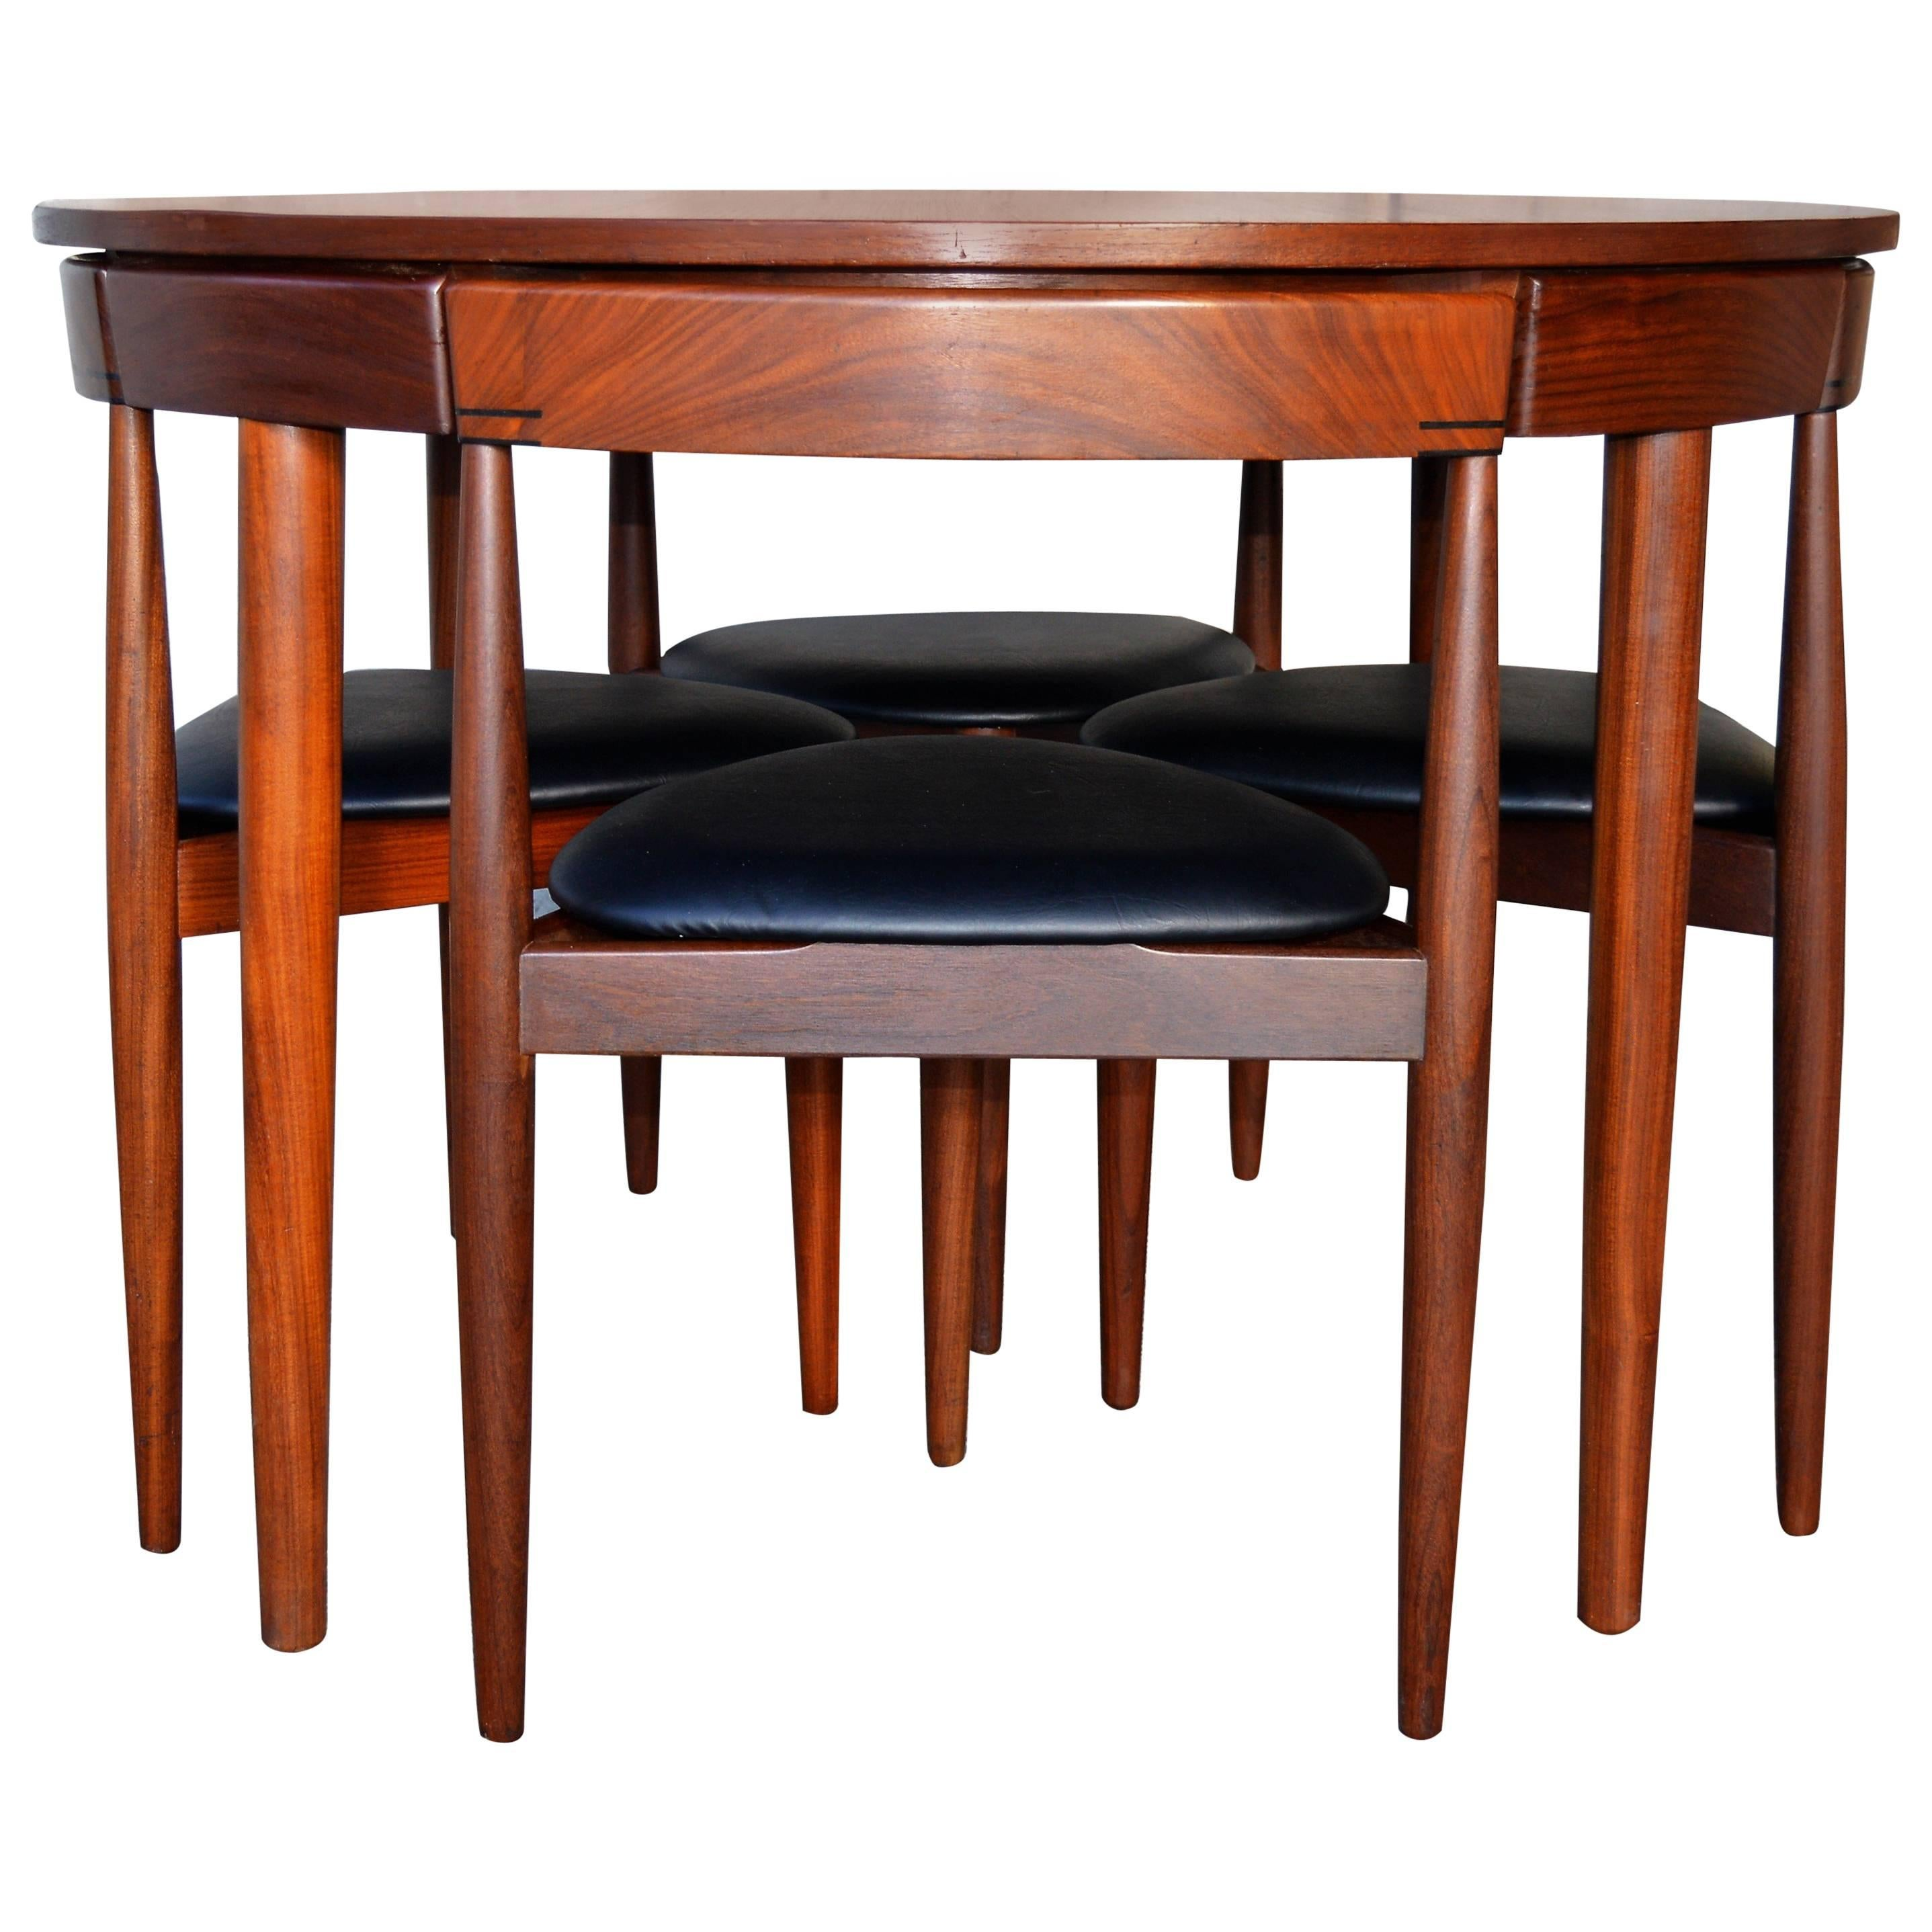 High Quality Compact Hans Olsen Teak Dining Set With Four Dining Chairs For Frem Rojle 1